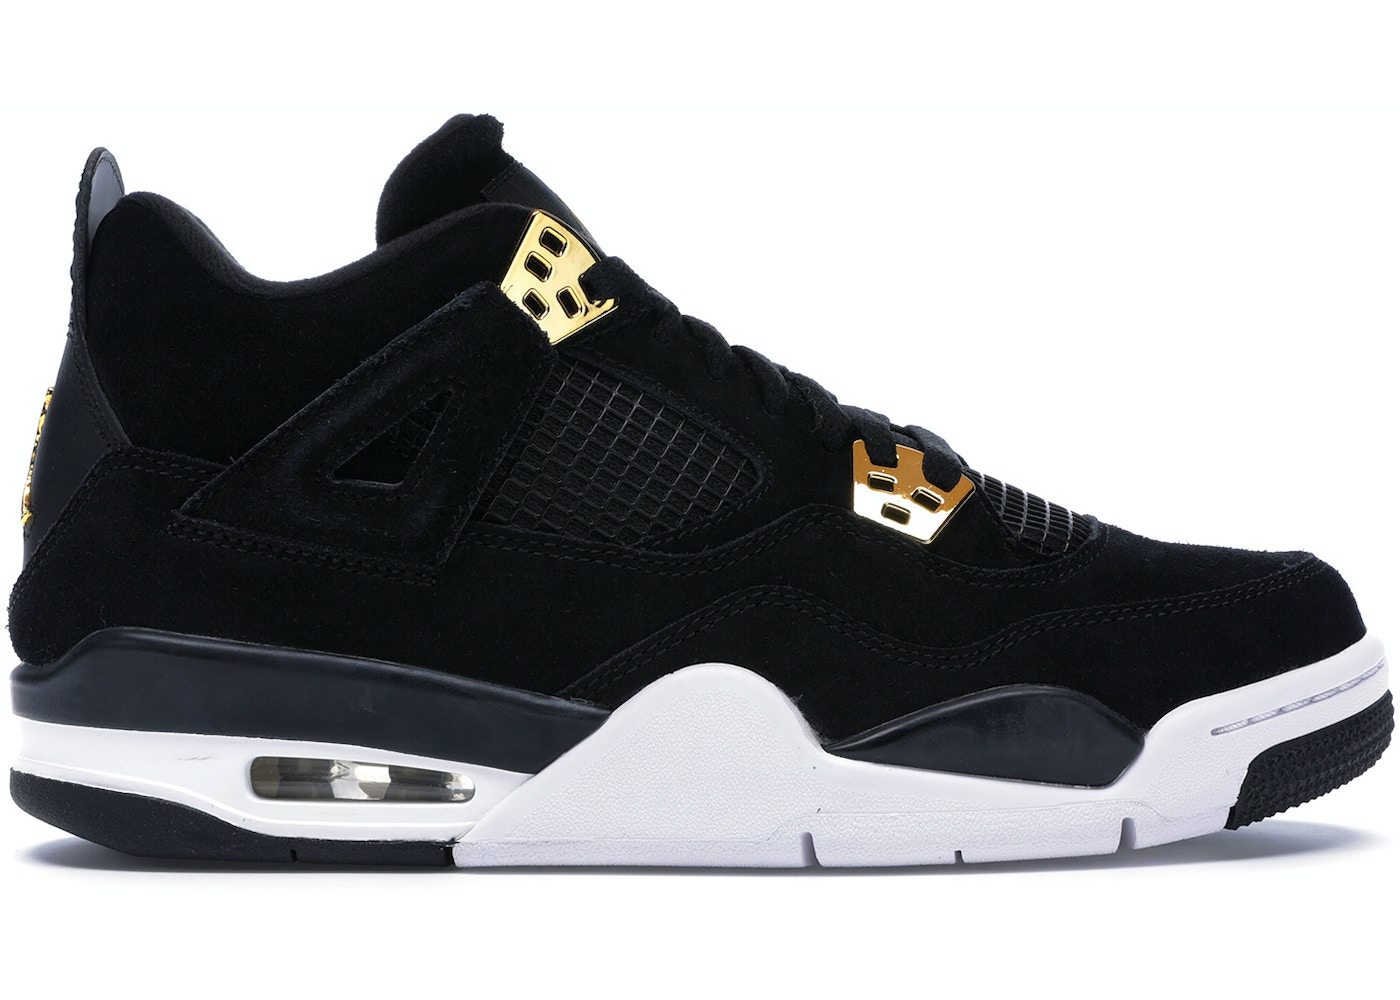 cheaper ebd0b 2c46d Jordan 4 Retro Royalty (GS)